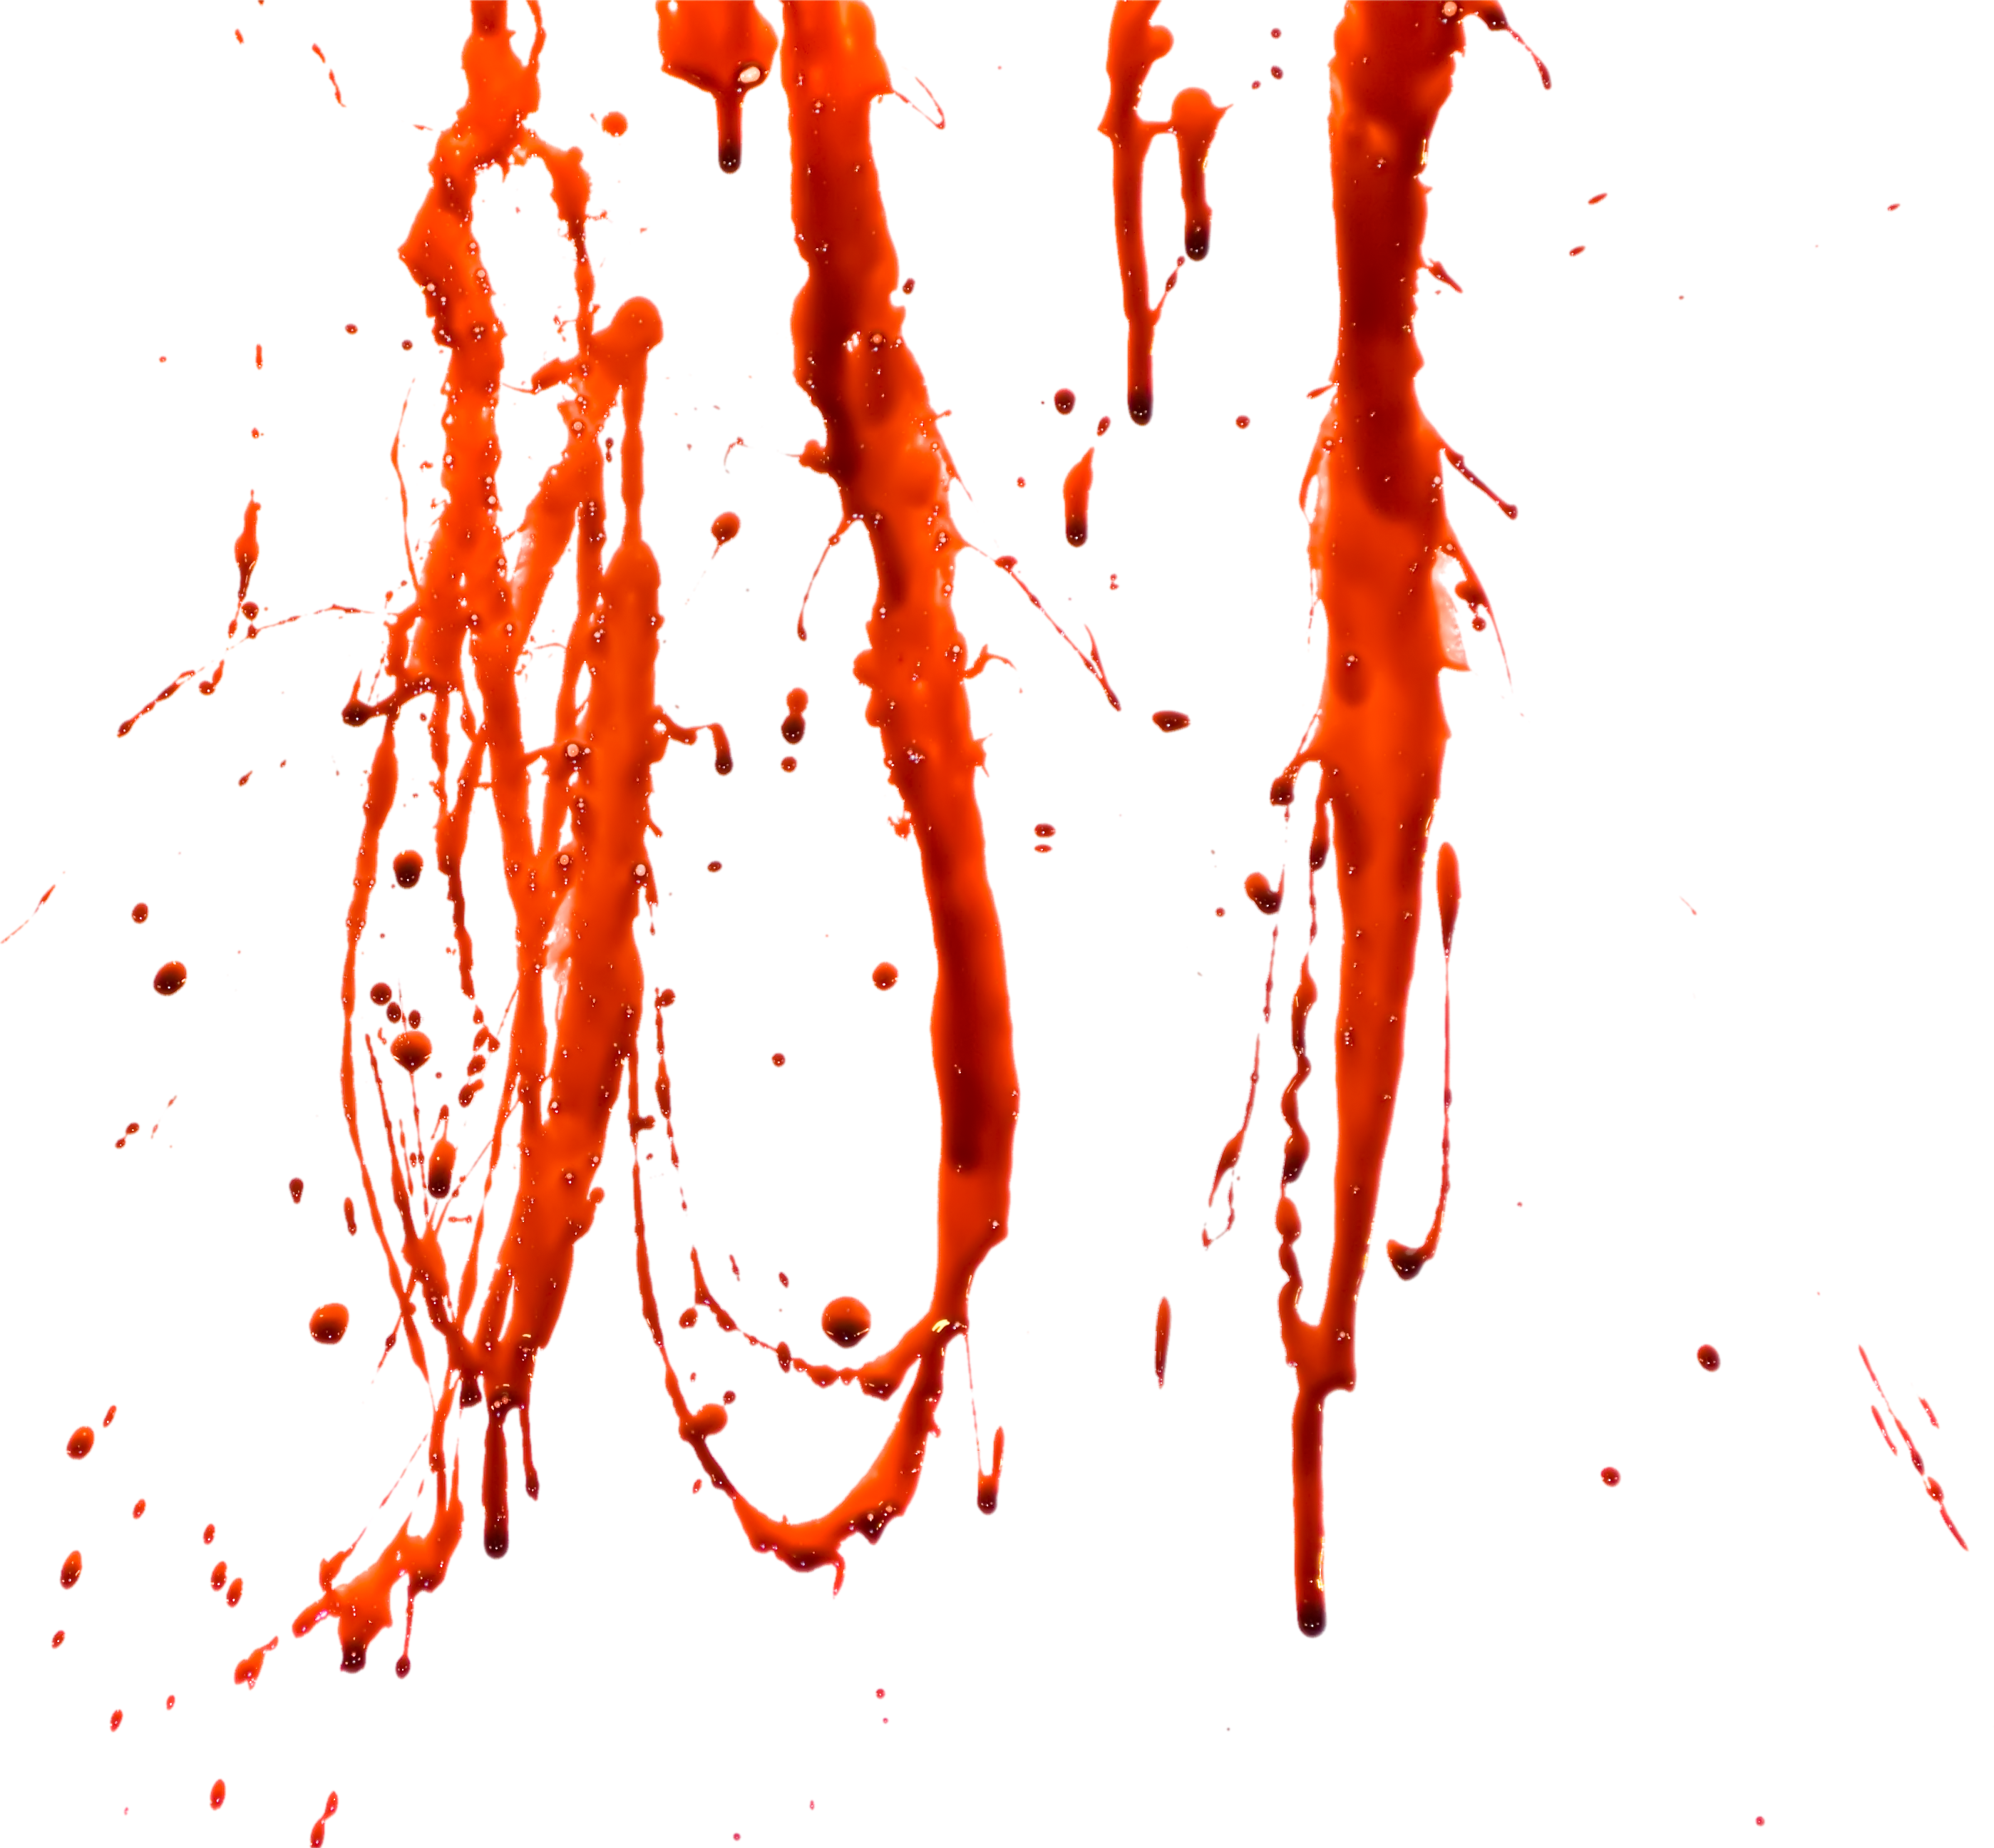 Images free download splashes. Realistic dripping blood png